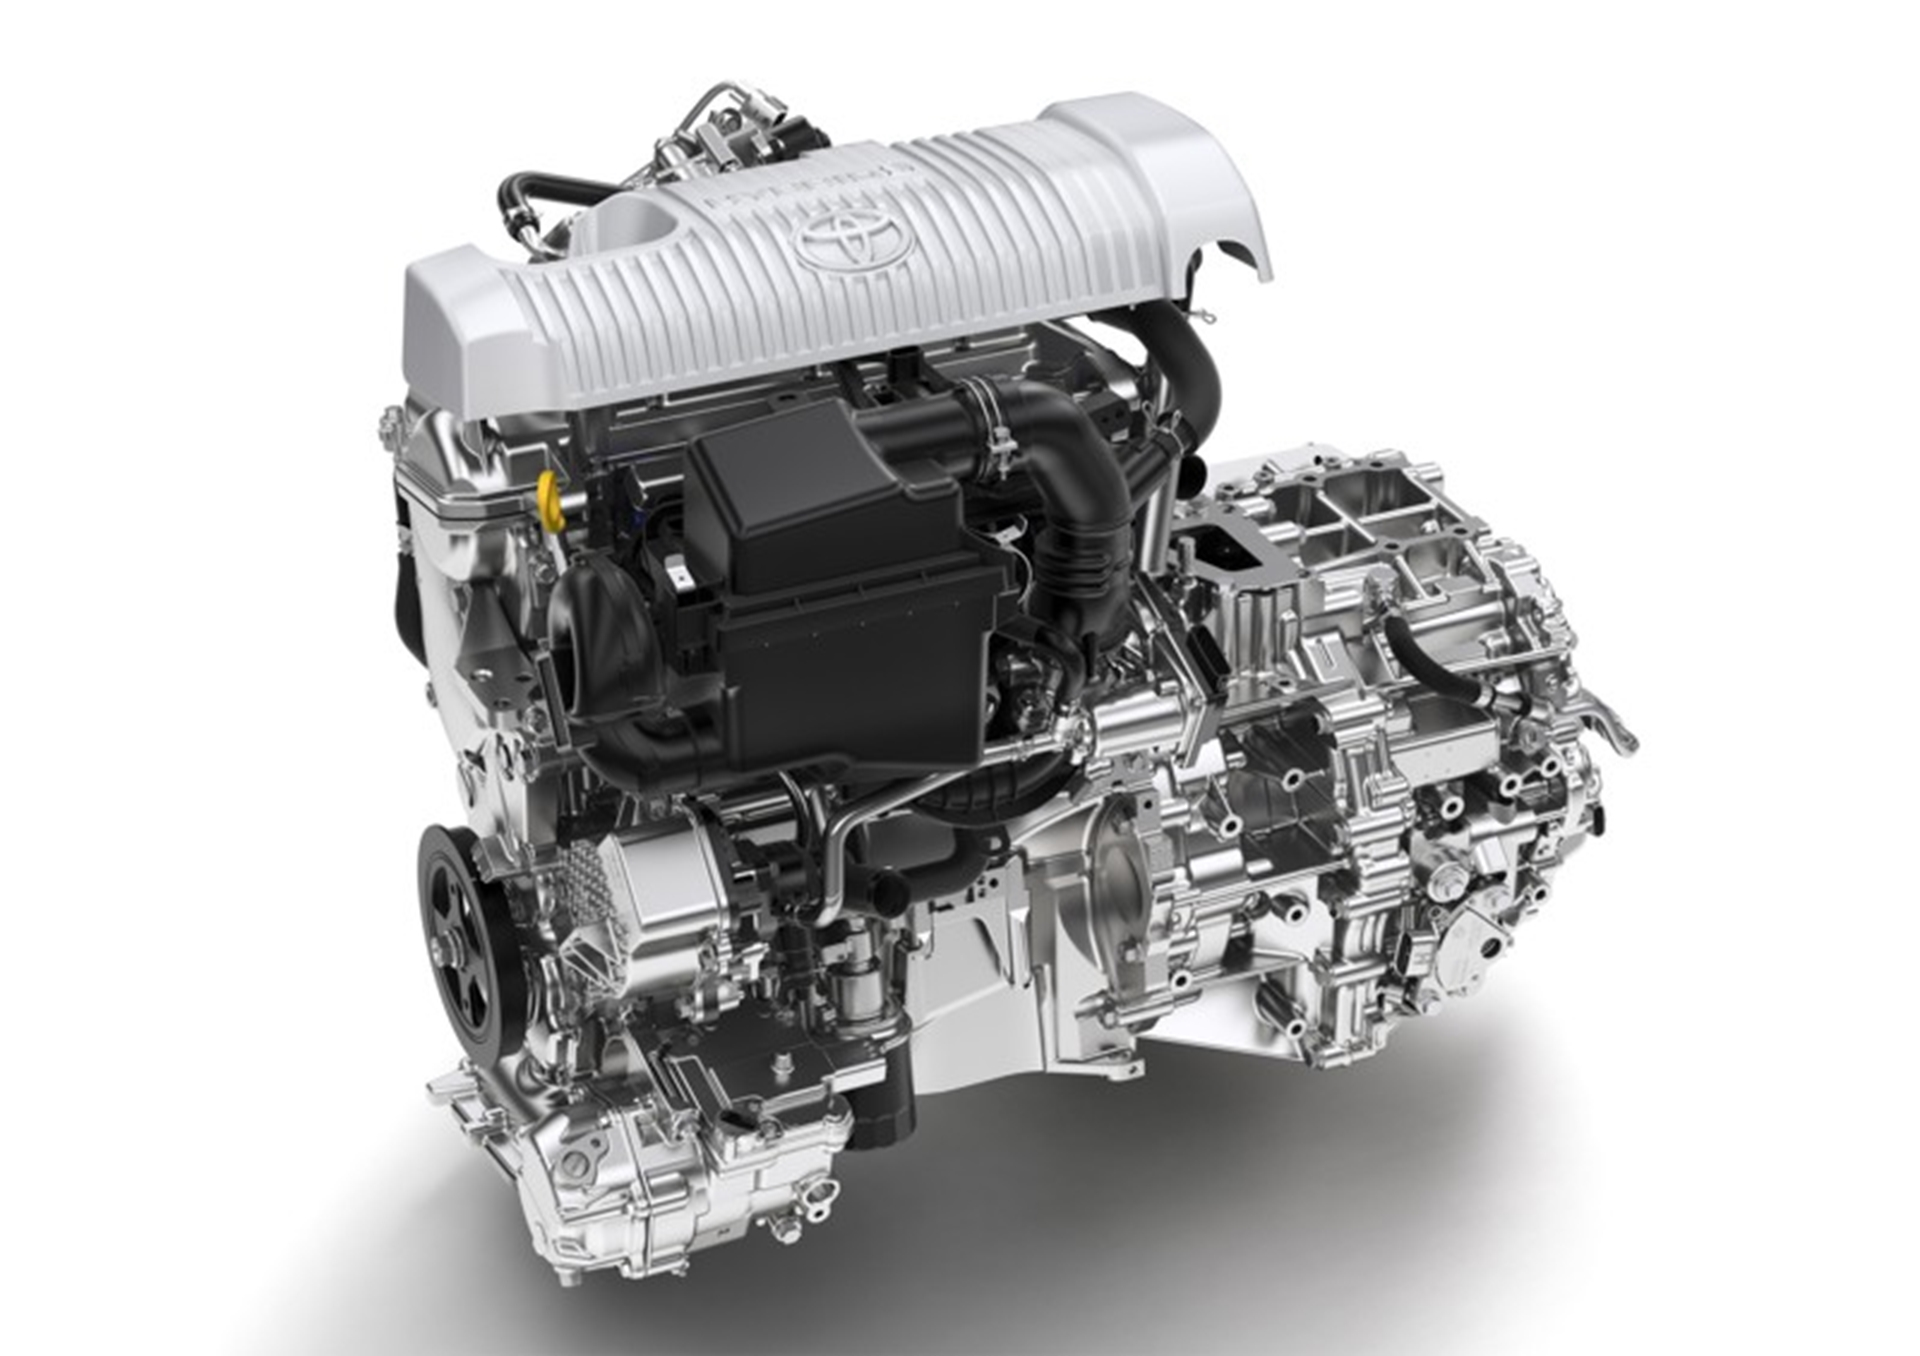 Hybrid Power Made To Measure For Toyota Yaris